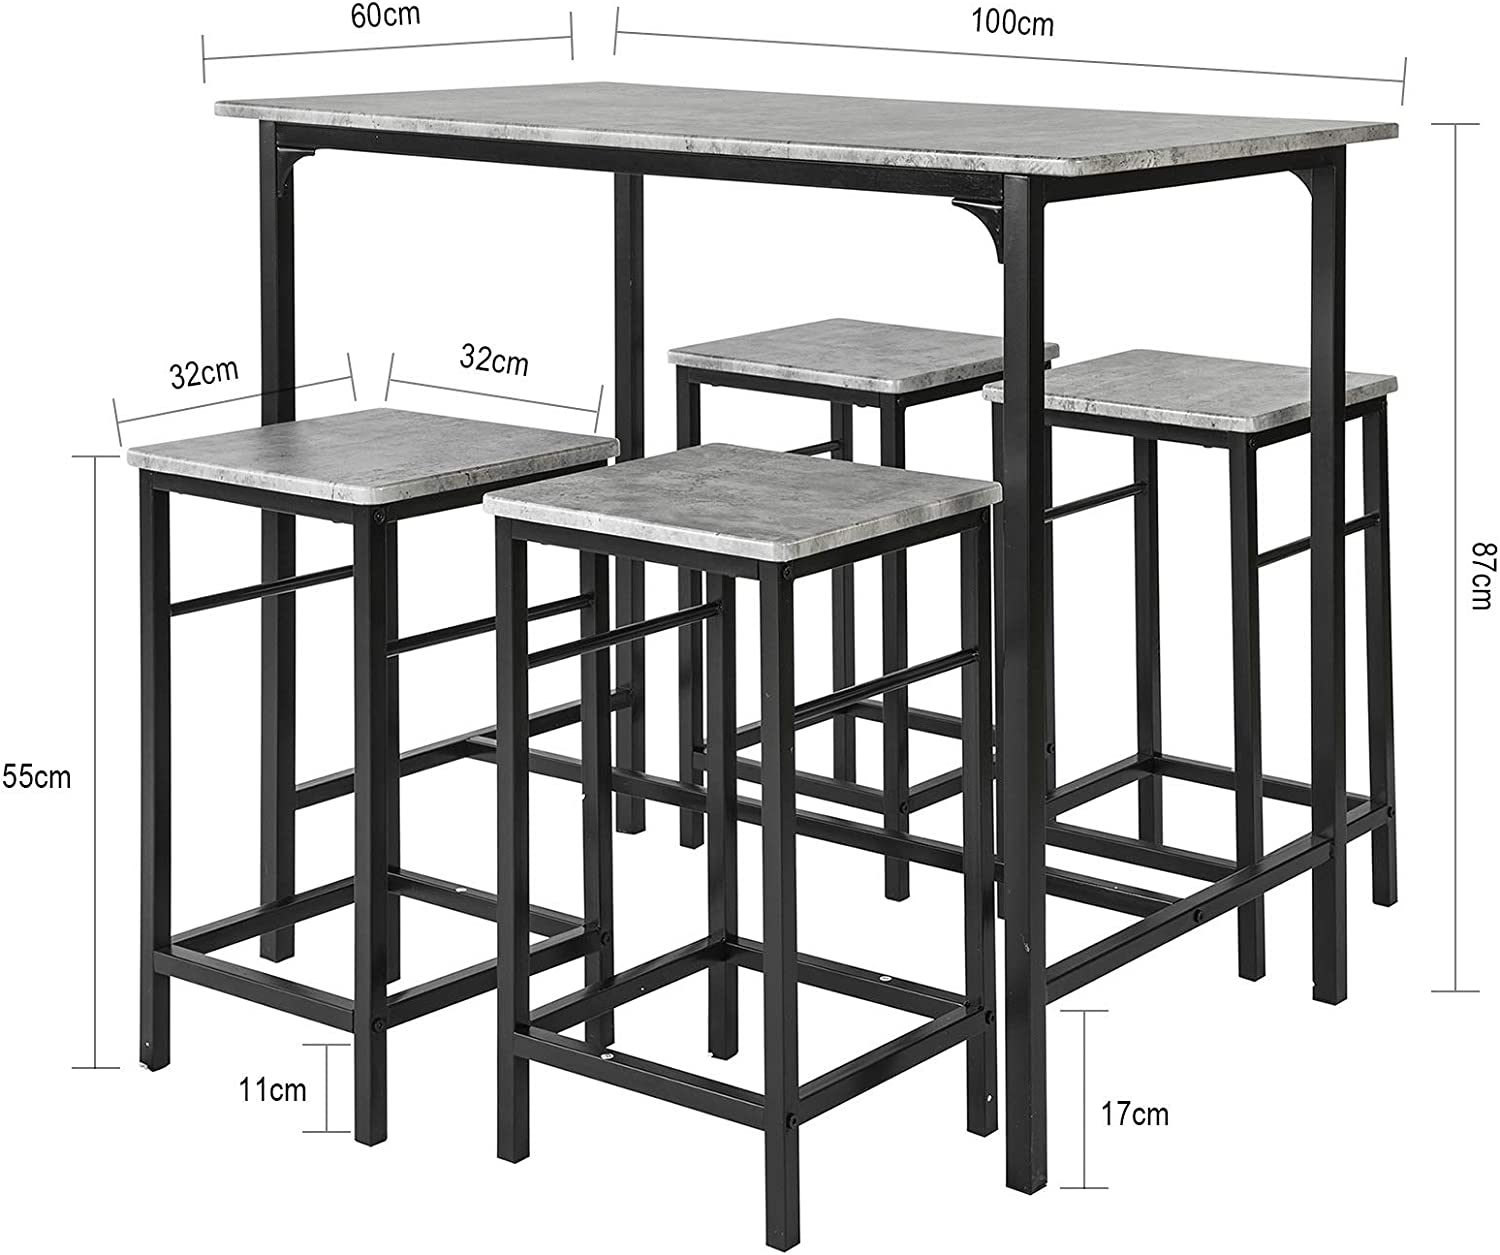 Haotian OGT11-HG, 5 Piece Dining Set, Dining Table with 4Stools, Home Kitchen Breakfast Table, Bar Table Set, Bar Table with 4 Bar Stools, Kitchen Counter with Bar Chairs - Table & Chair Sets